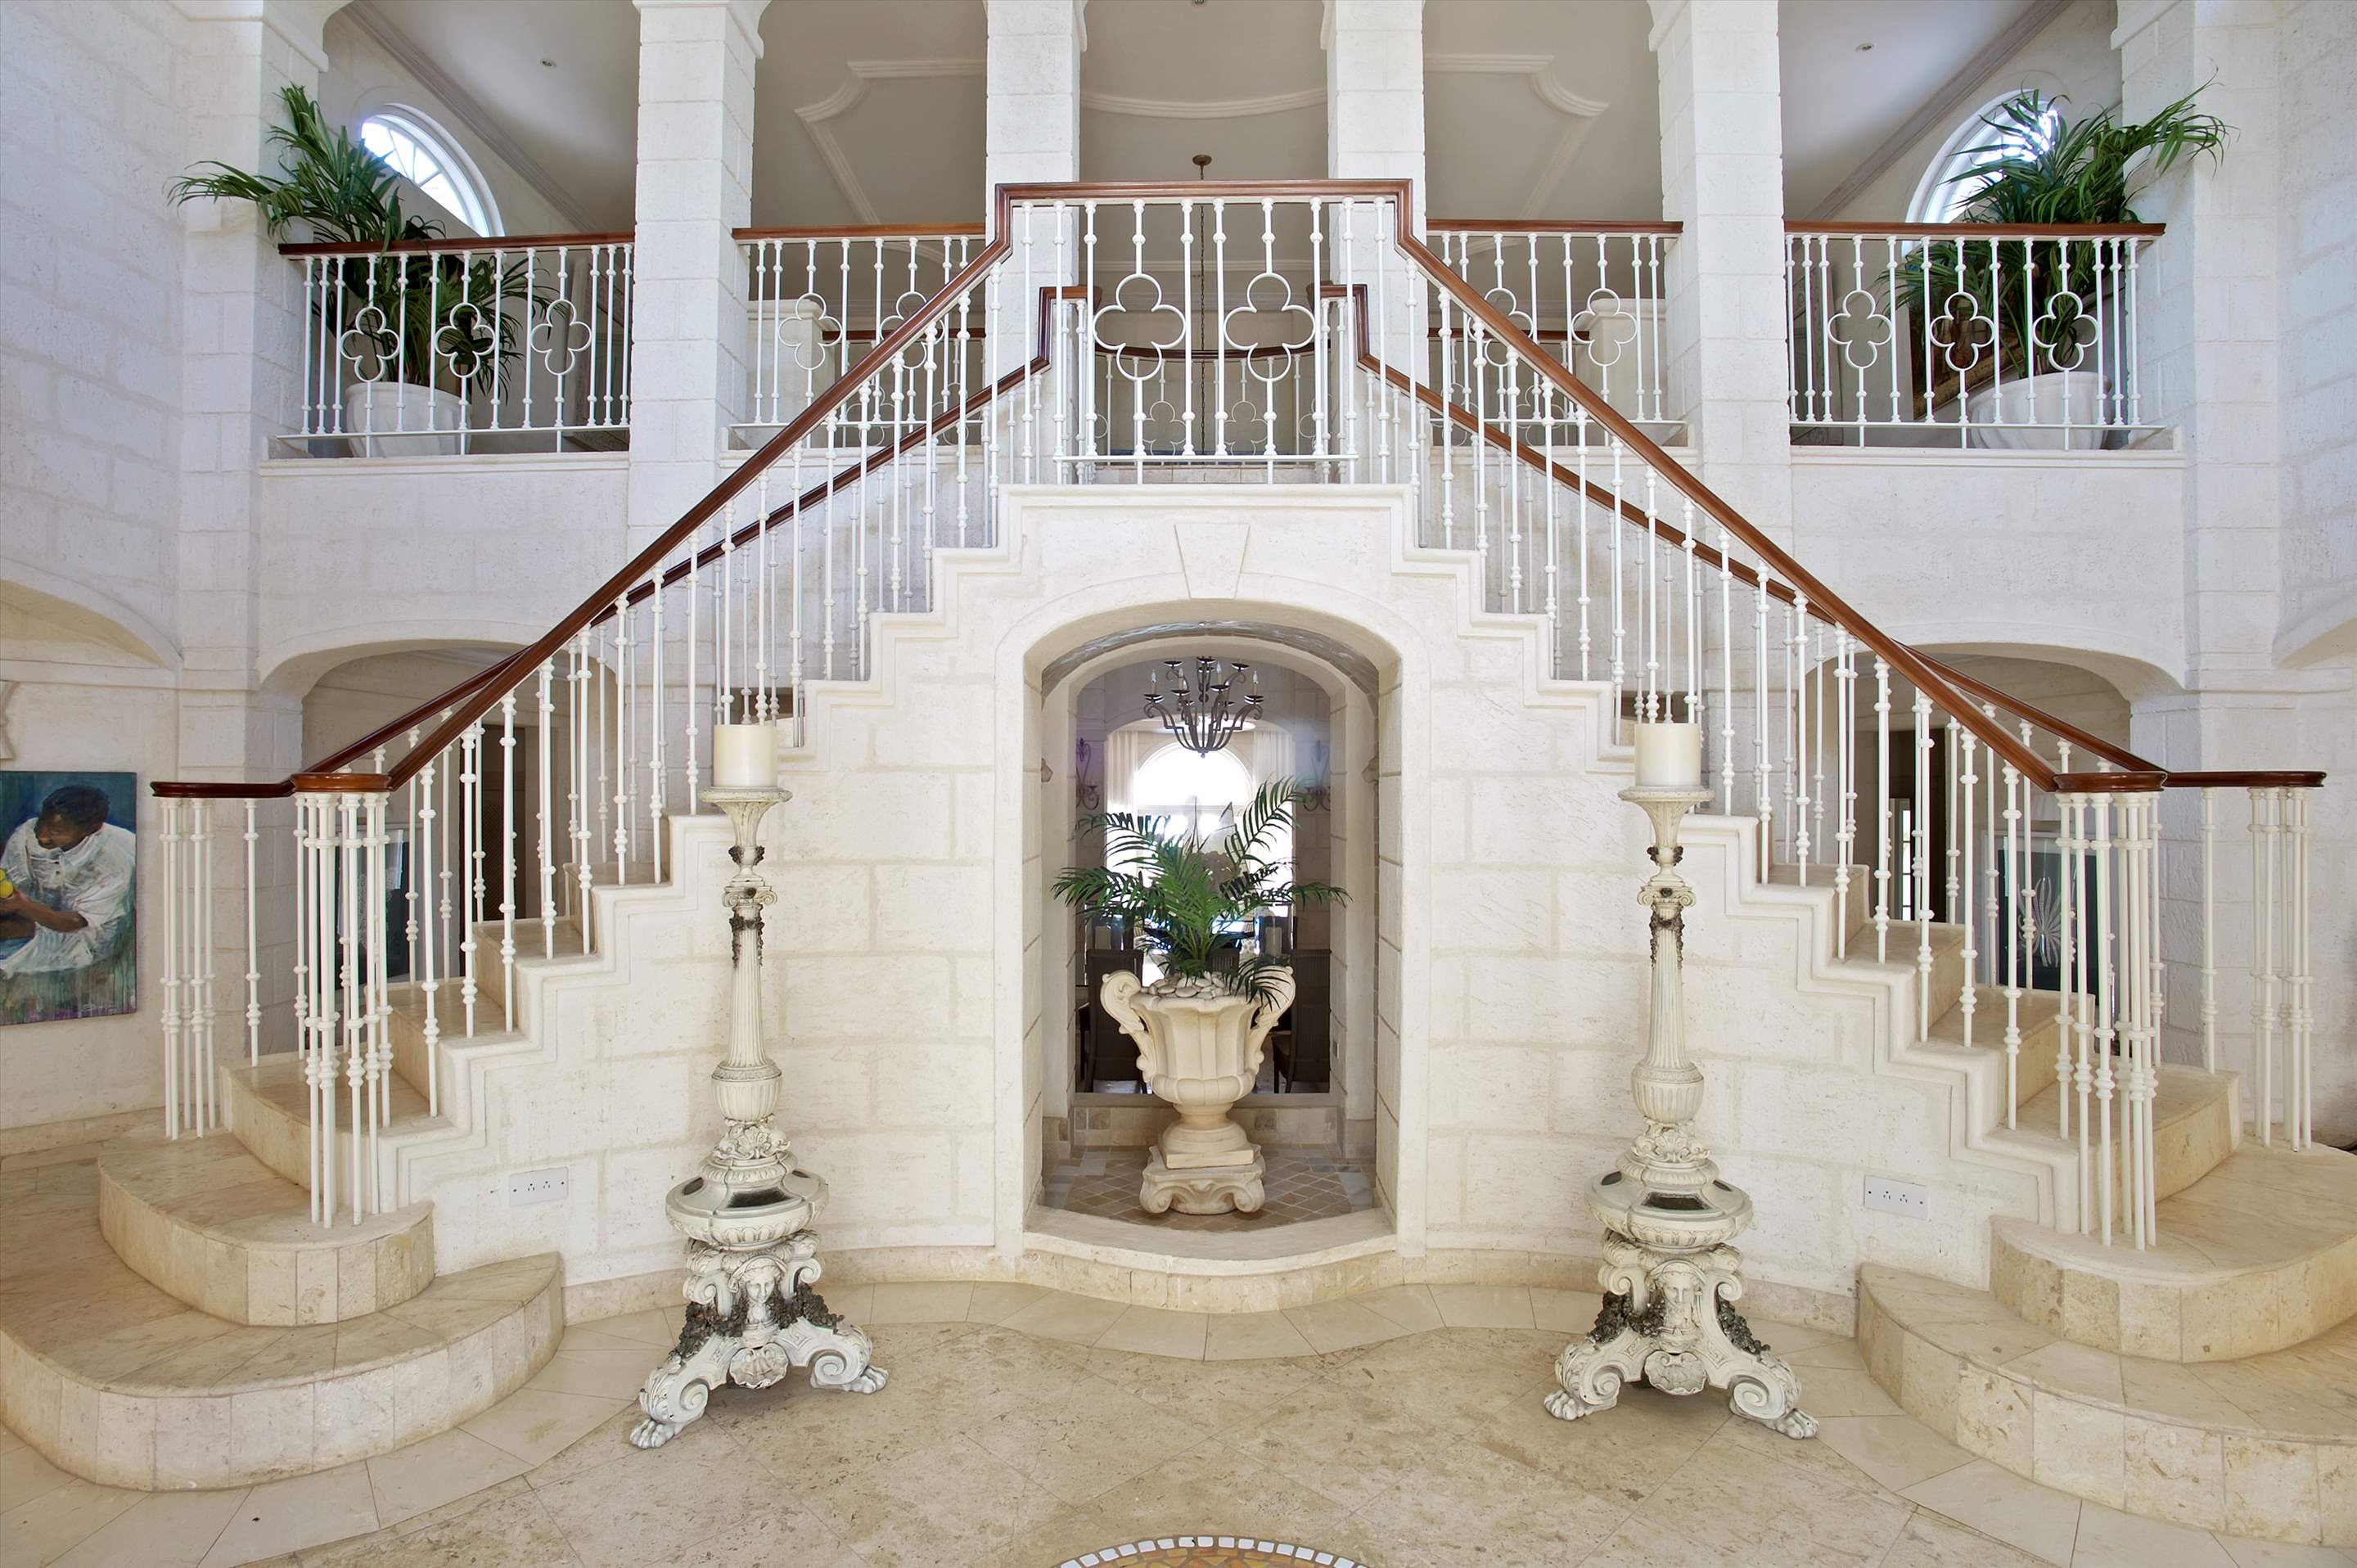 Plantation House, Royal Westmoreland, 6 bedroom, 6 bedroom villa in St. James & West Coast, Barbados Photo #5